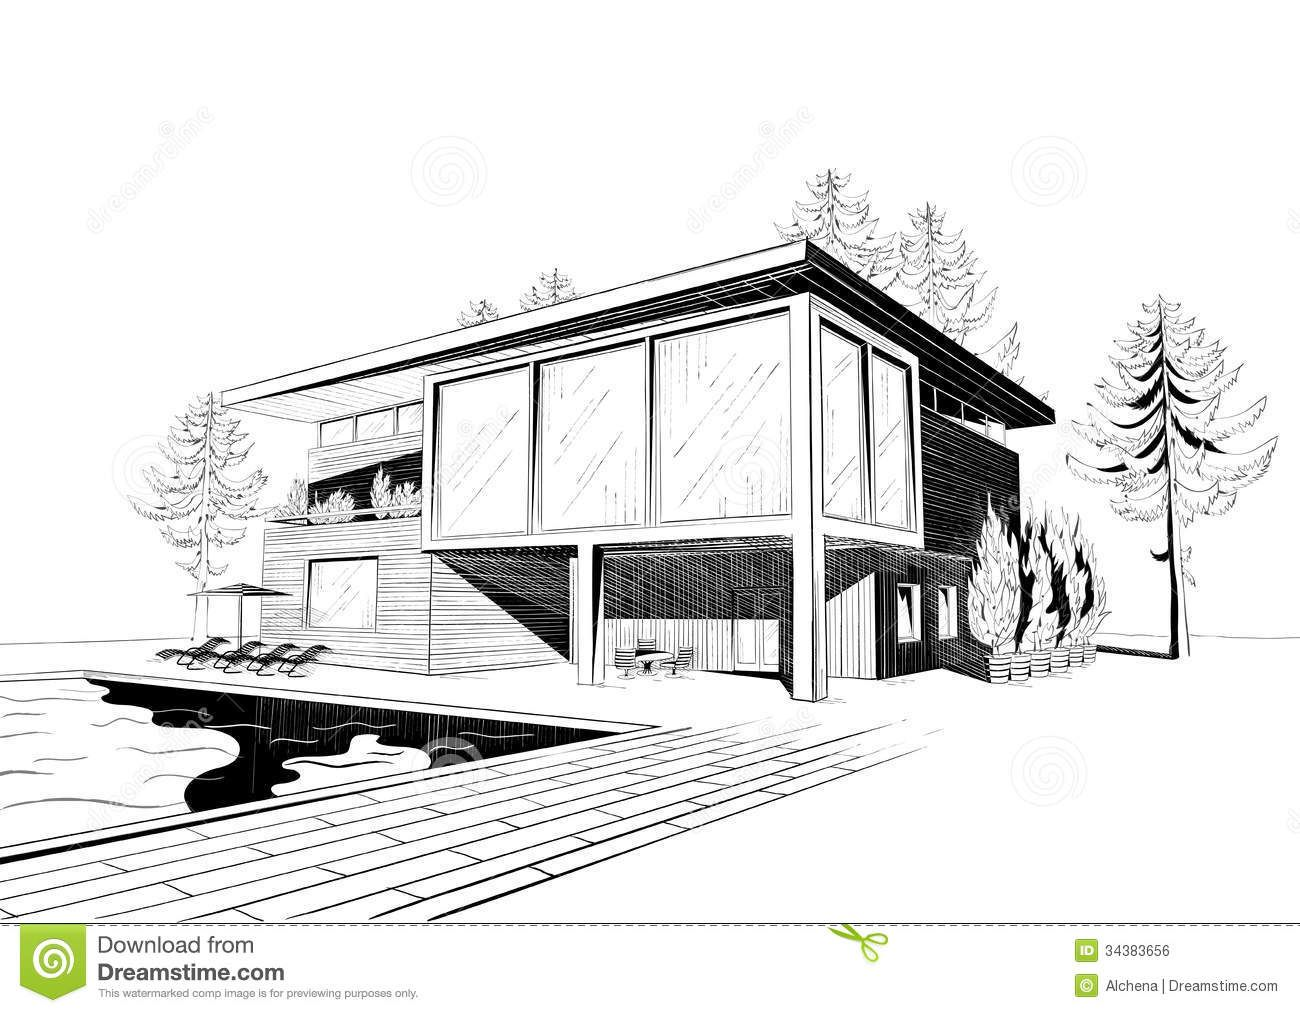 Excellent modern home architecture sketches on home design for House sketches from photos